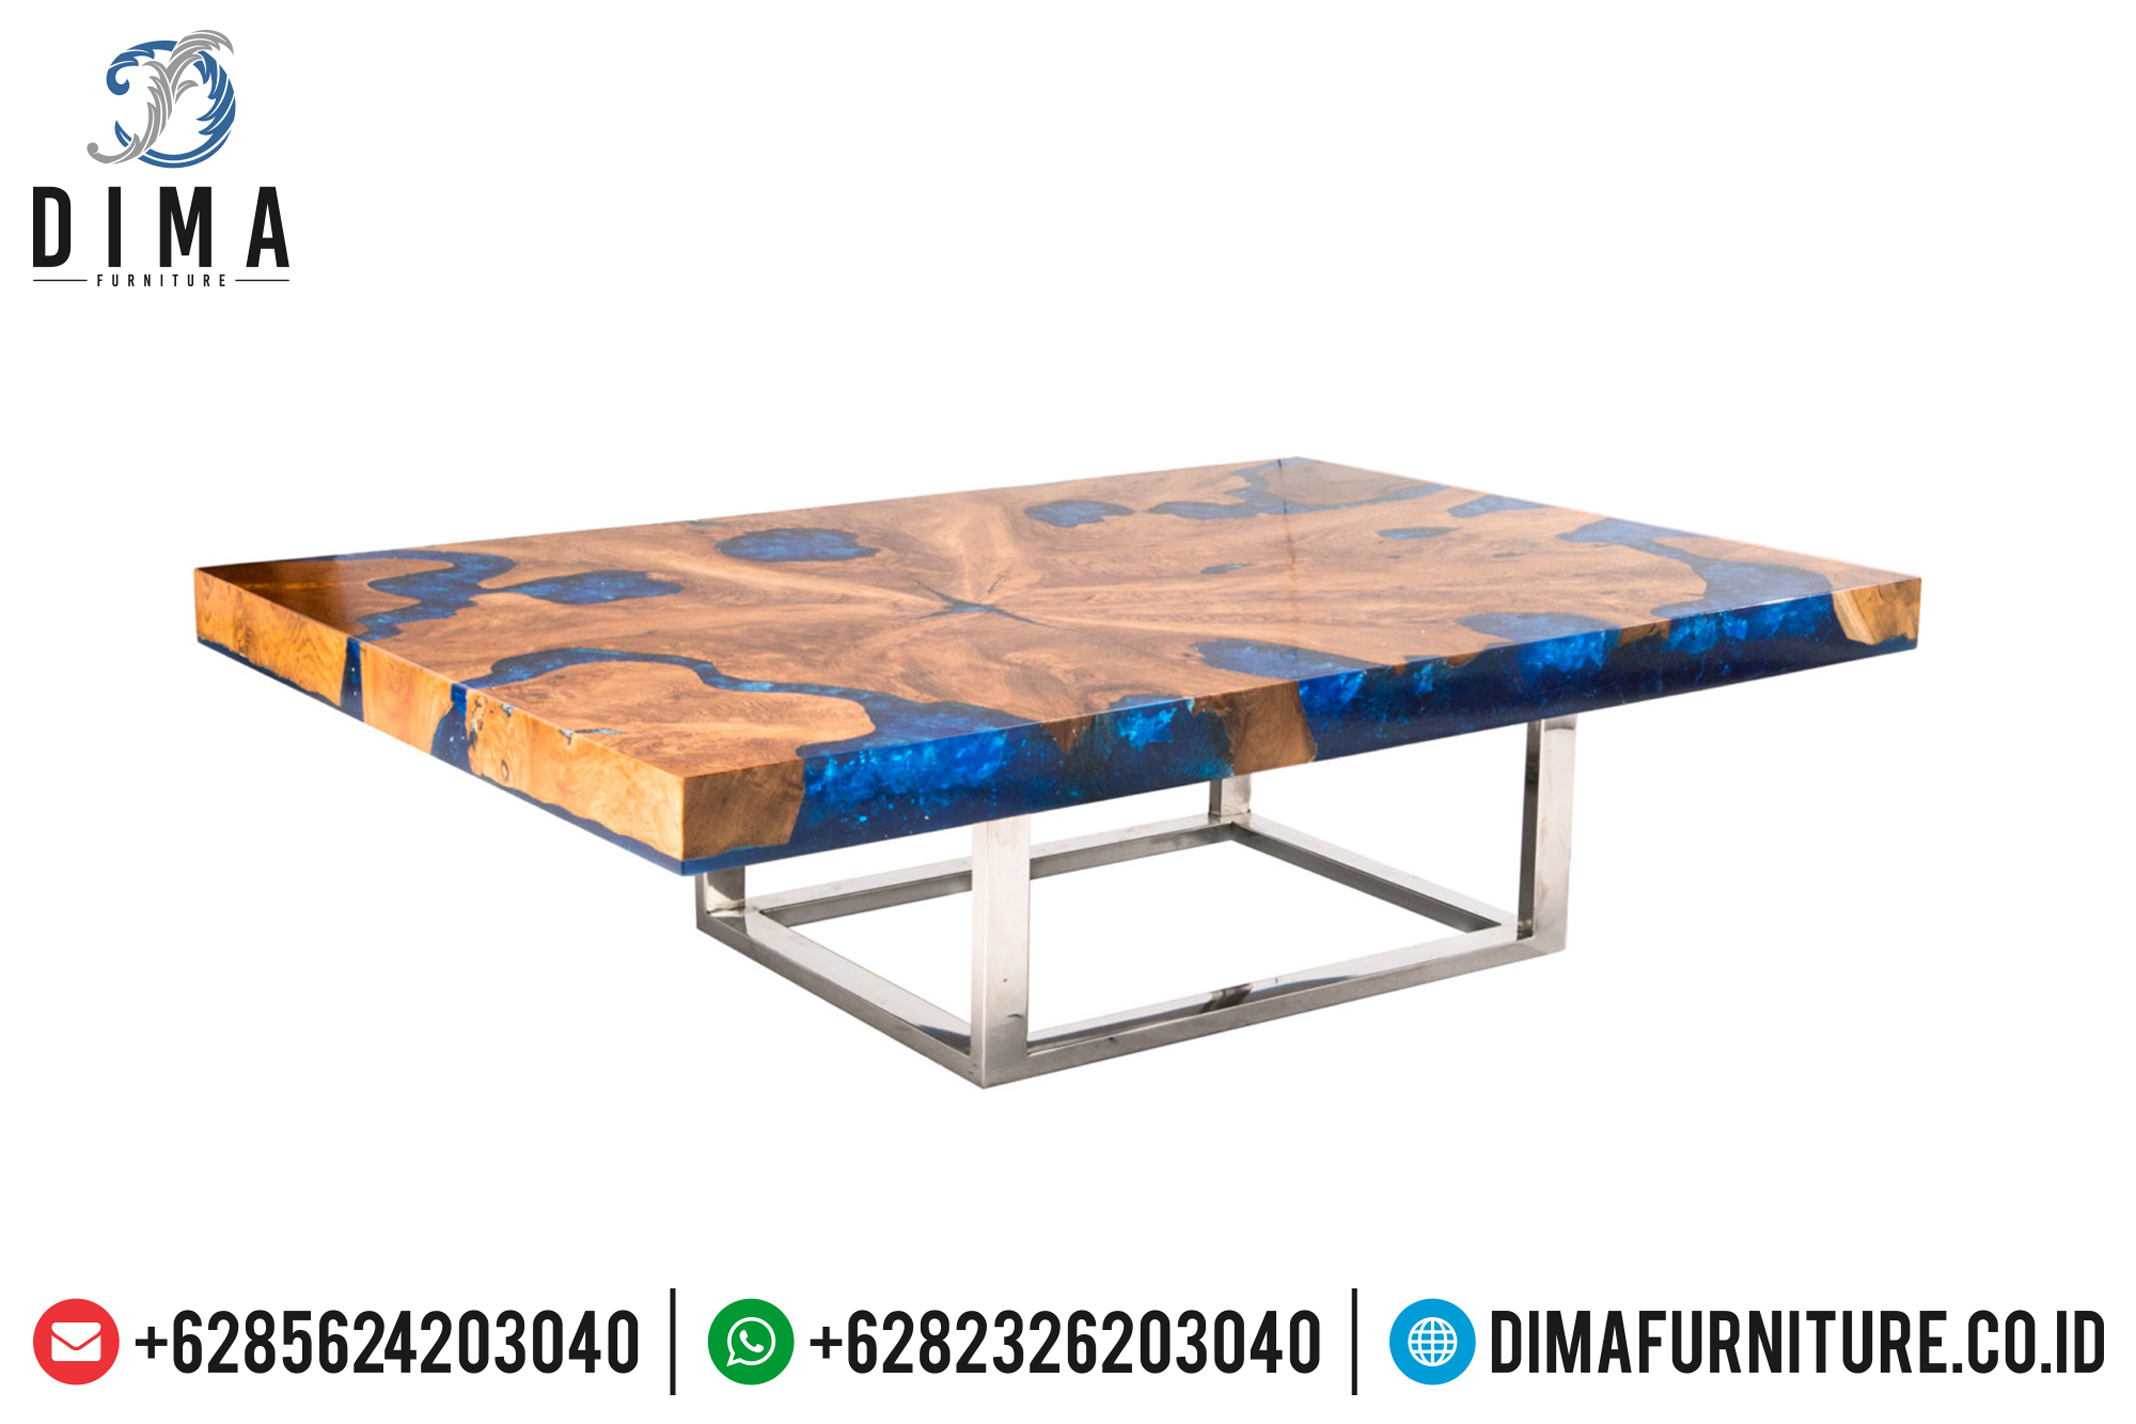 Meja Tamu Resin Biru, Jual Meja Resin Terbaru, Resin Furniture Indonesia ST-0643